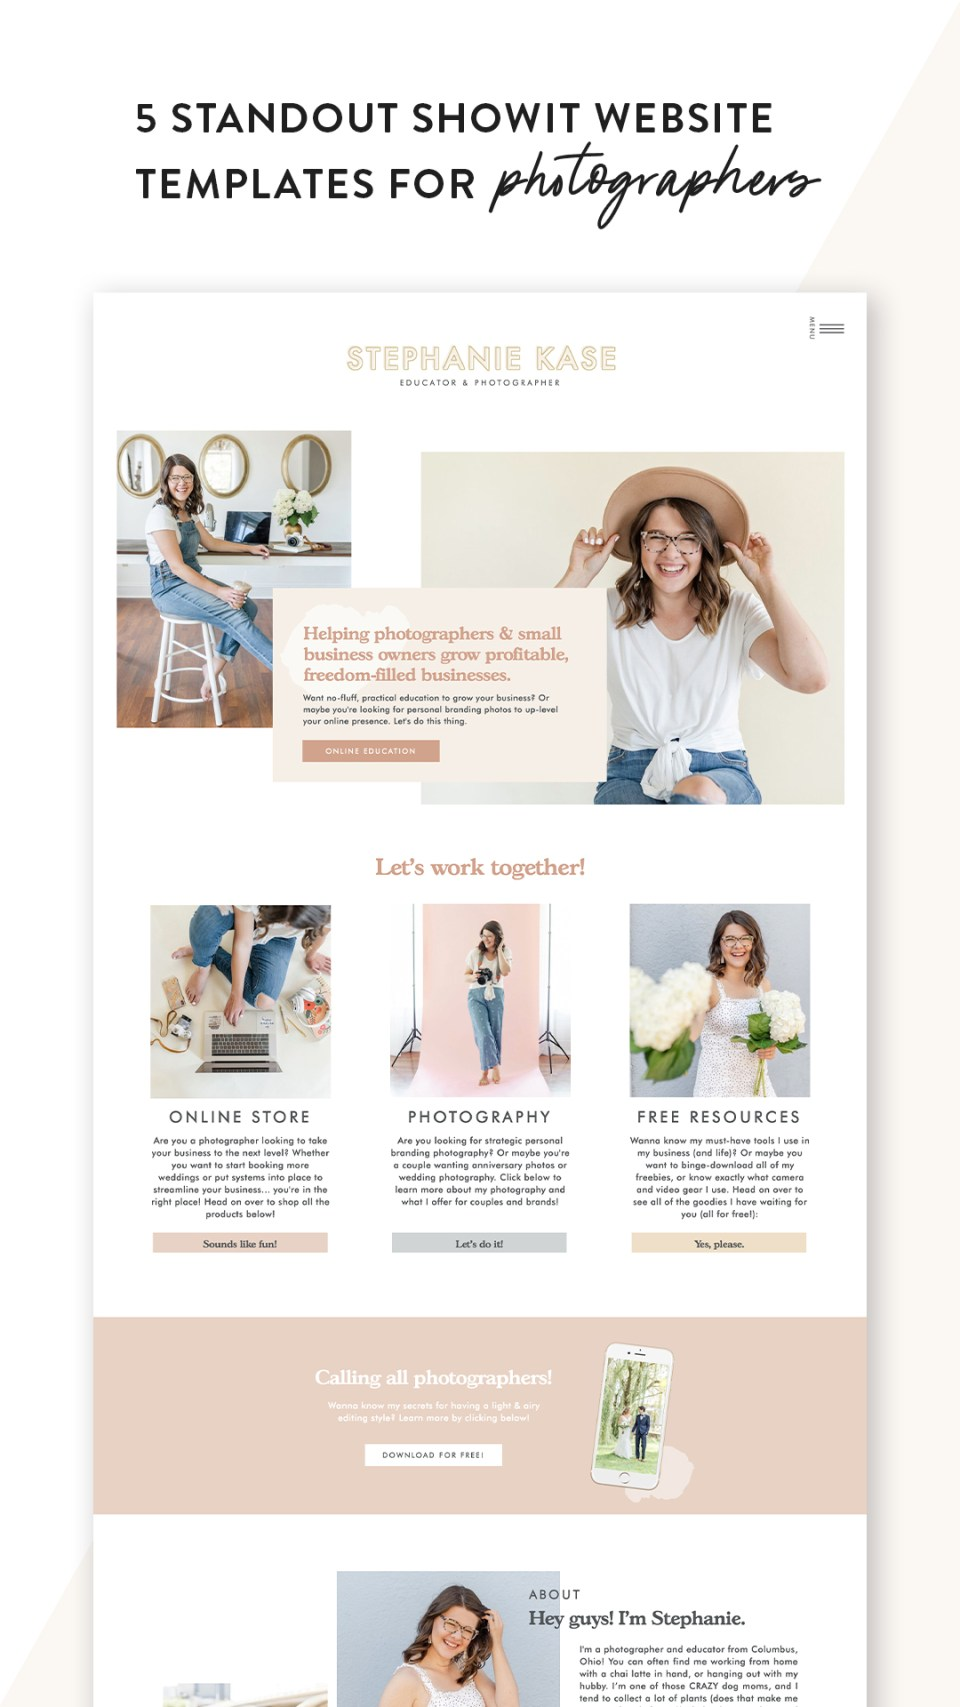 Check out these 5 best Showit website templates for photographers designed by Elizabeth McCravy.